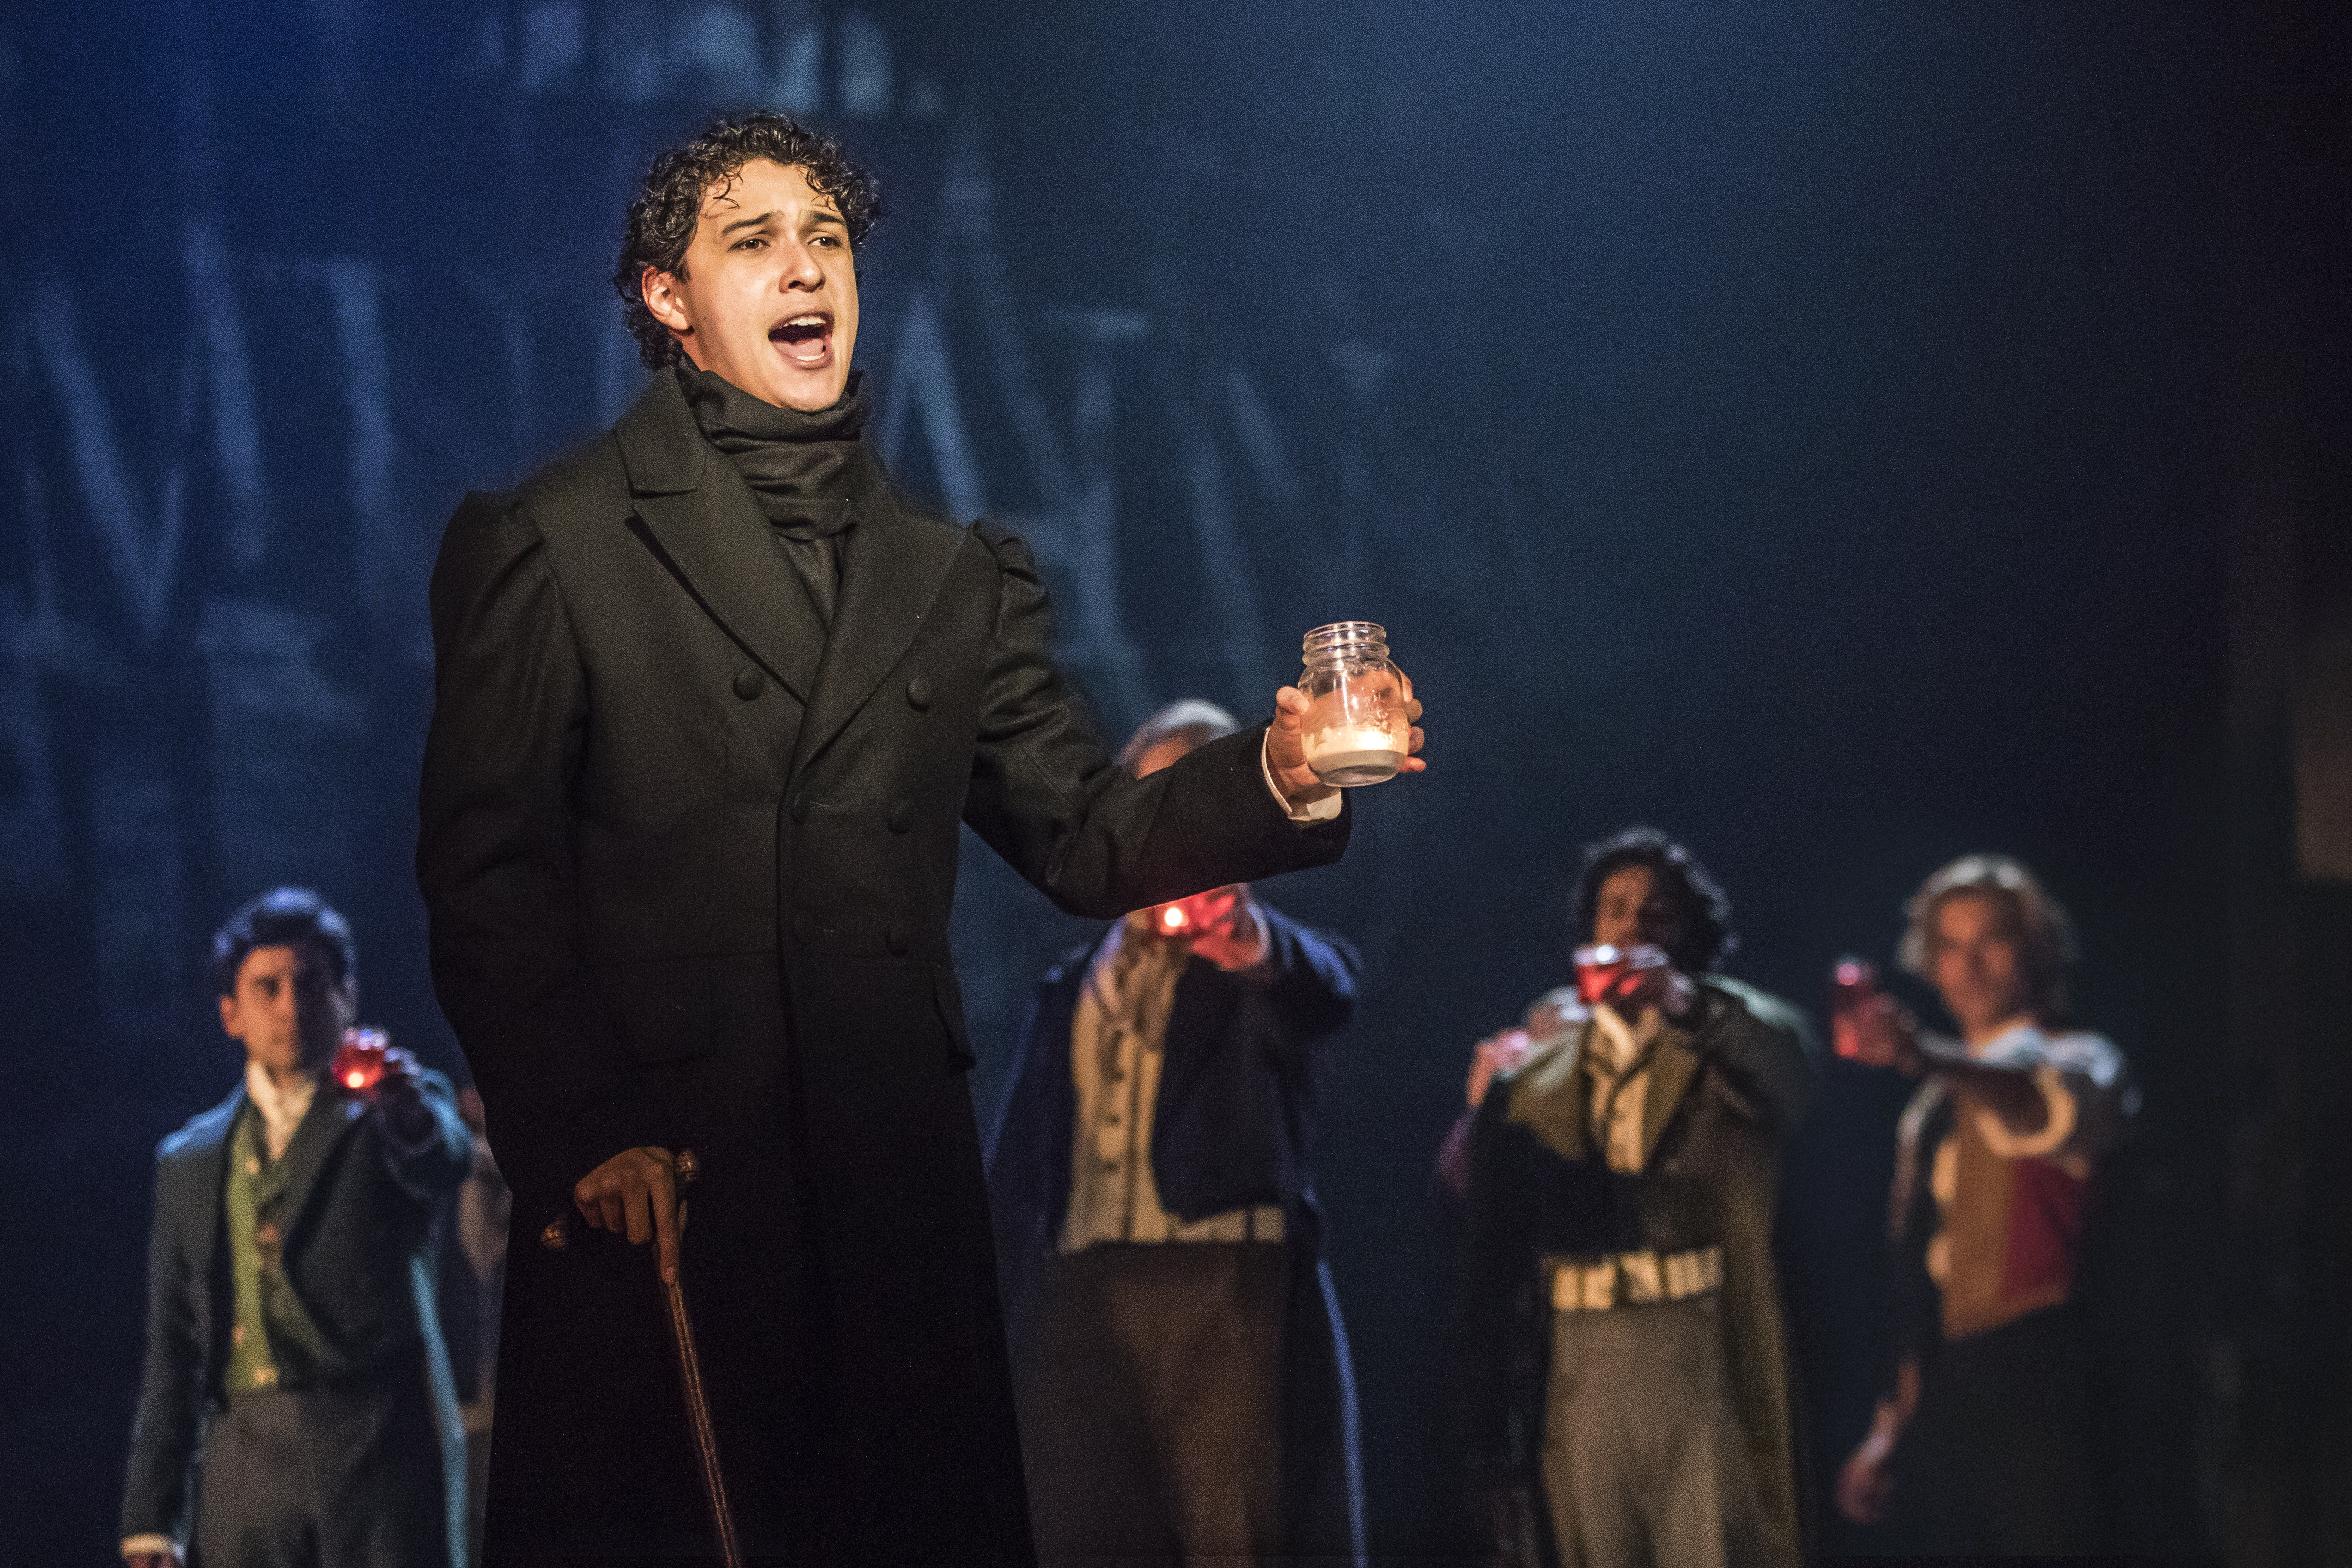 """Joshua Grosso as Marius in the second act of Les Misérables, singing the song """"Empty Chairs at Empty Tables"""". This photograph is provided by the national tour's official photographers. All rights are reserved to them."""